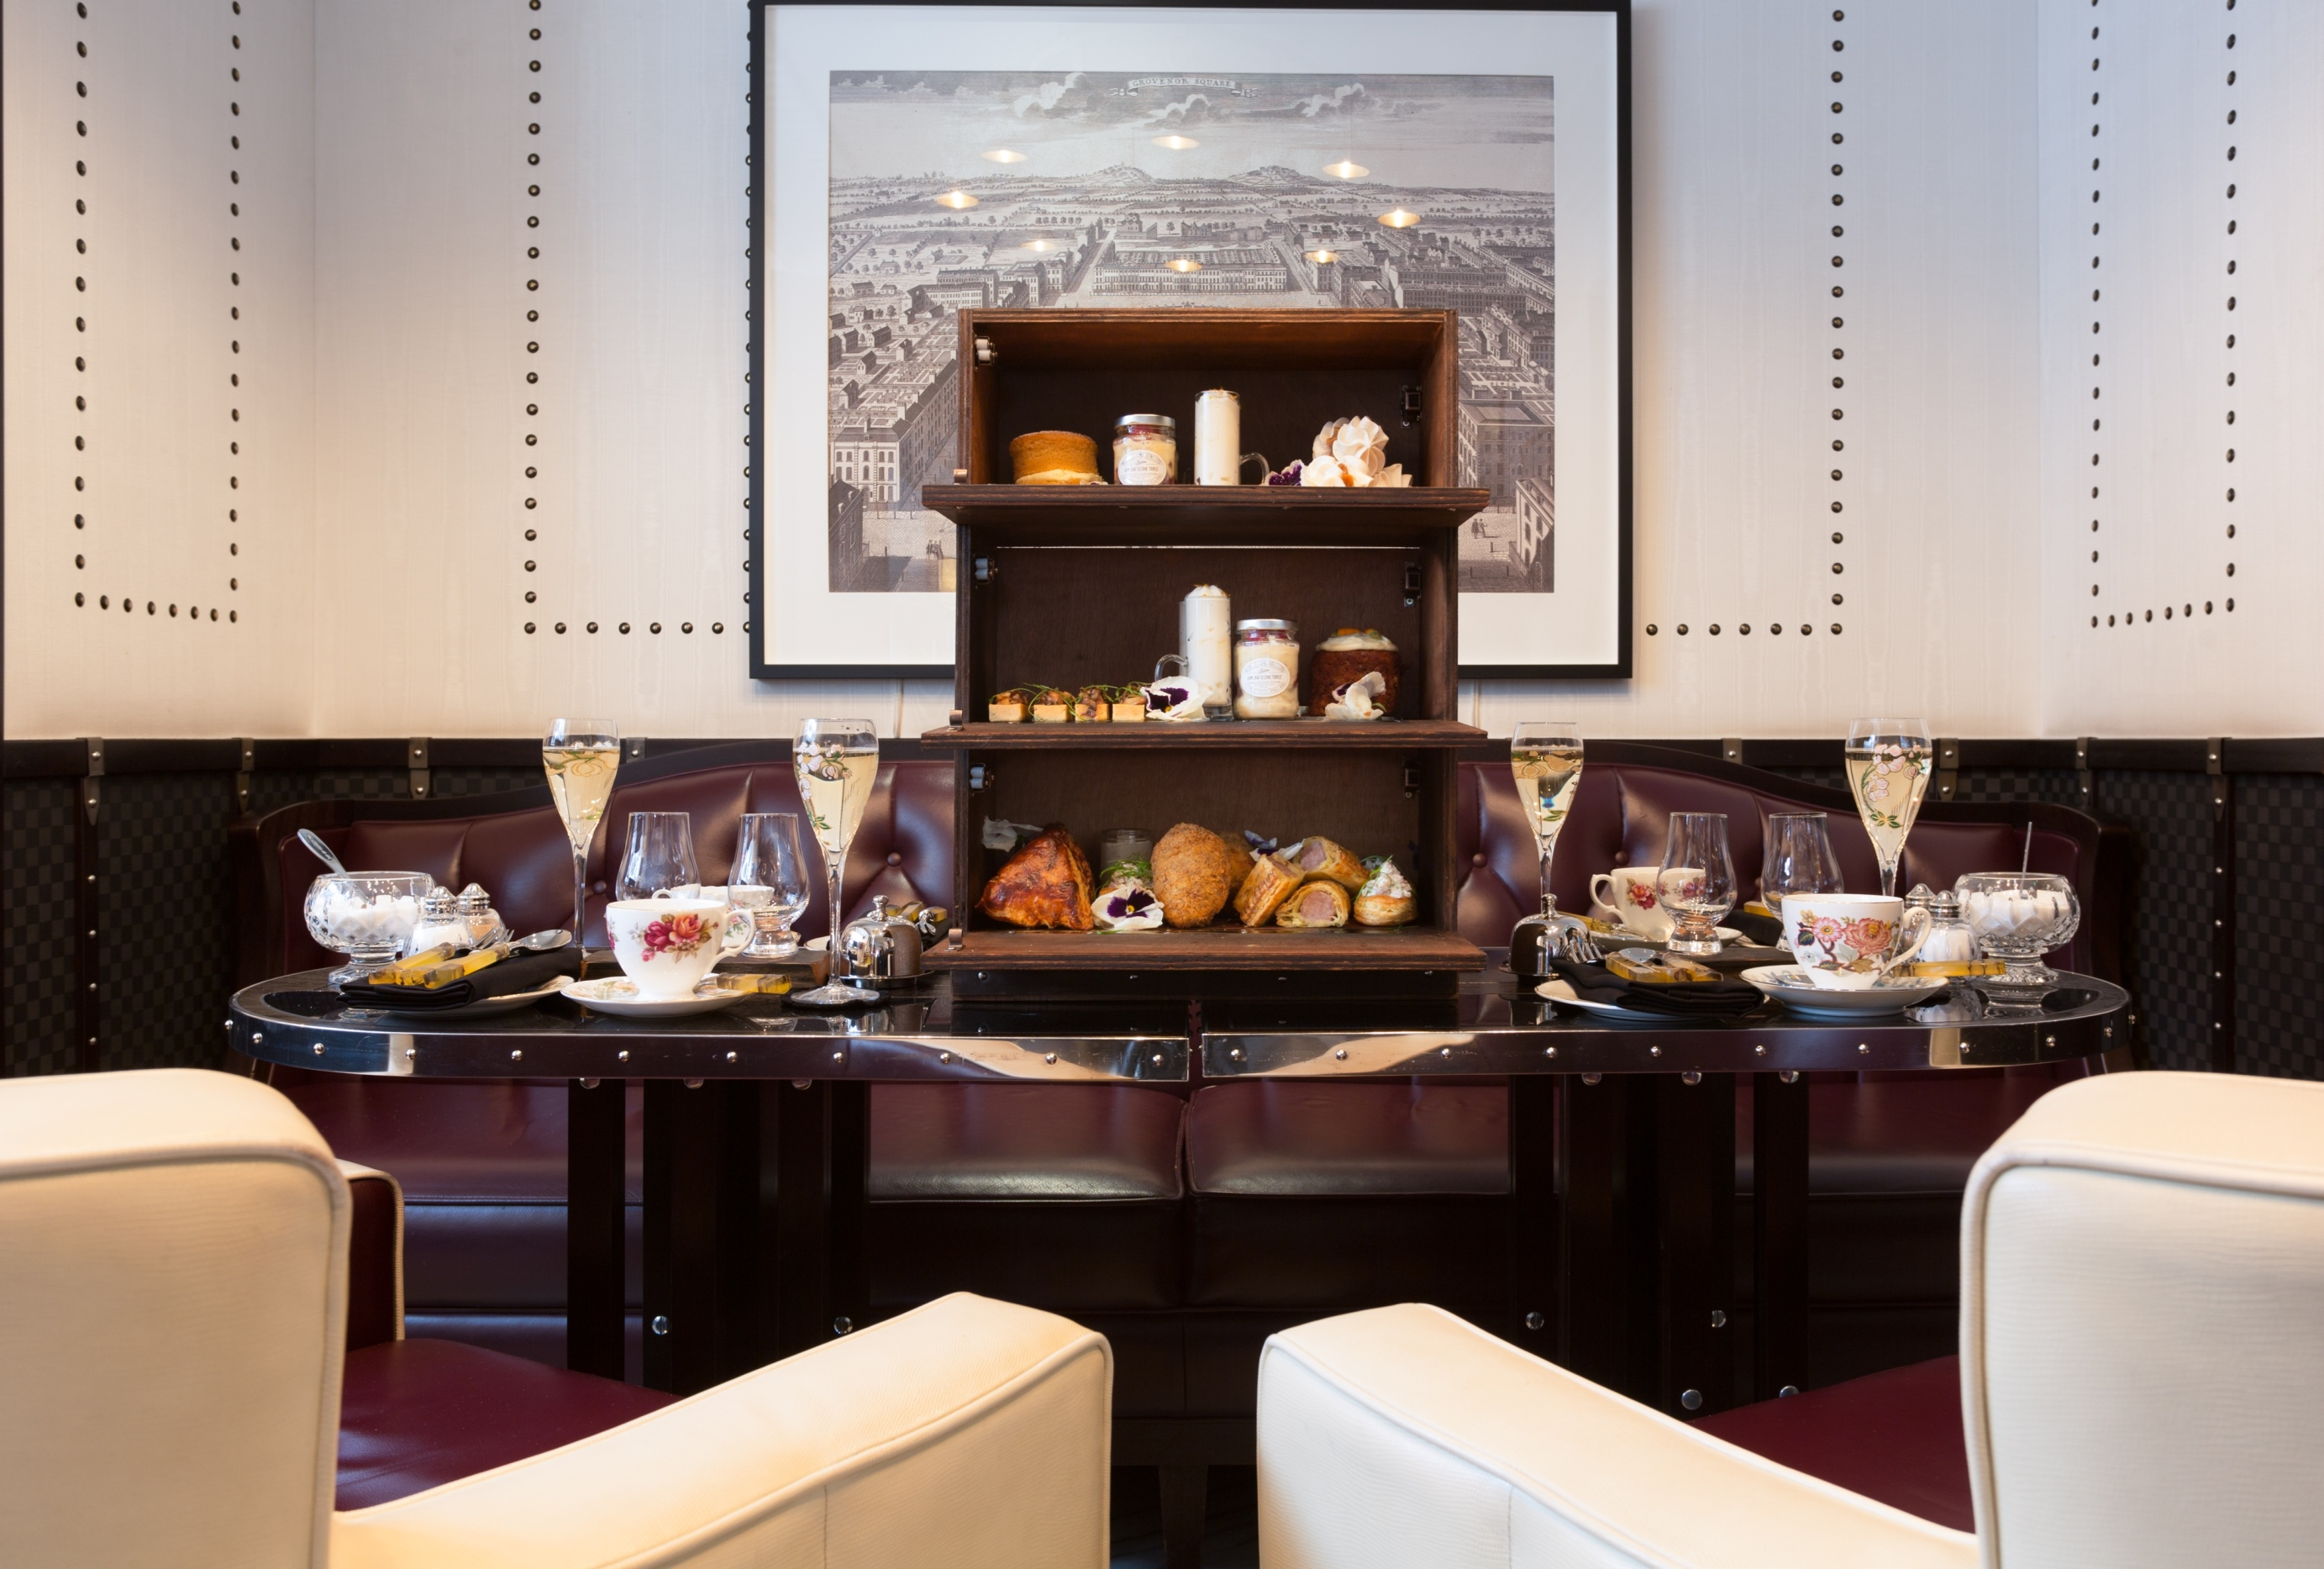 Afternoon tea at The Luggage Room